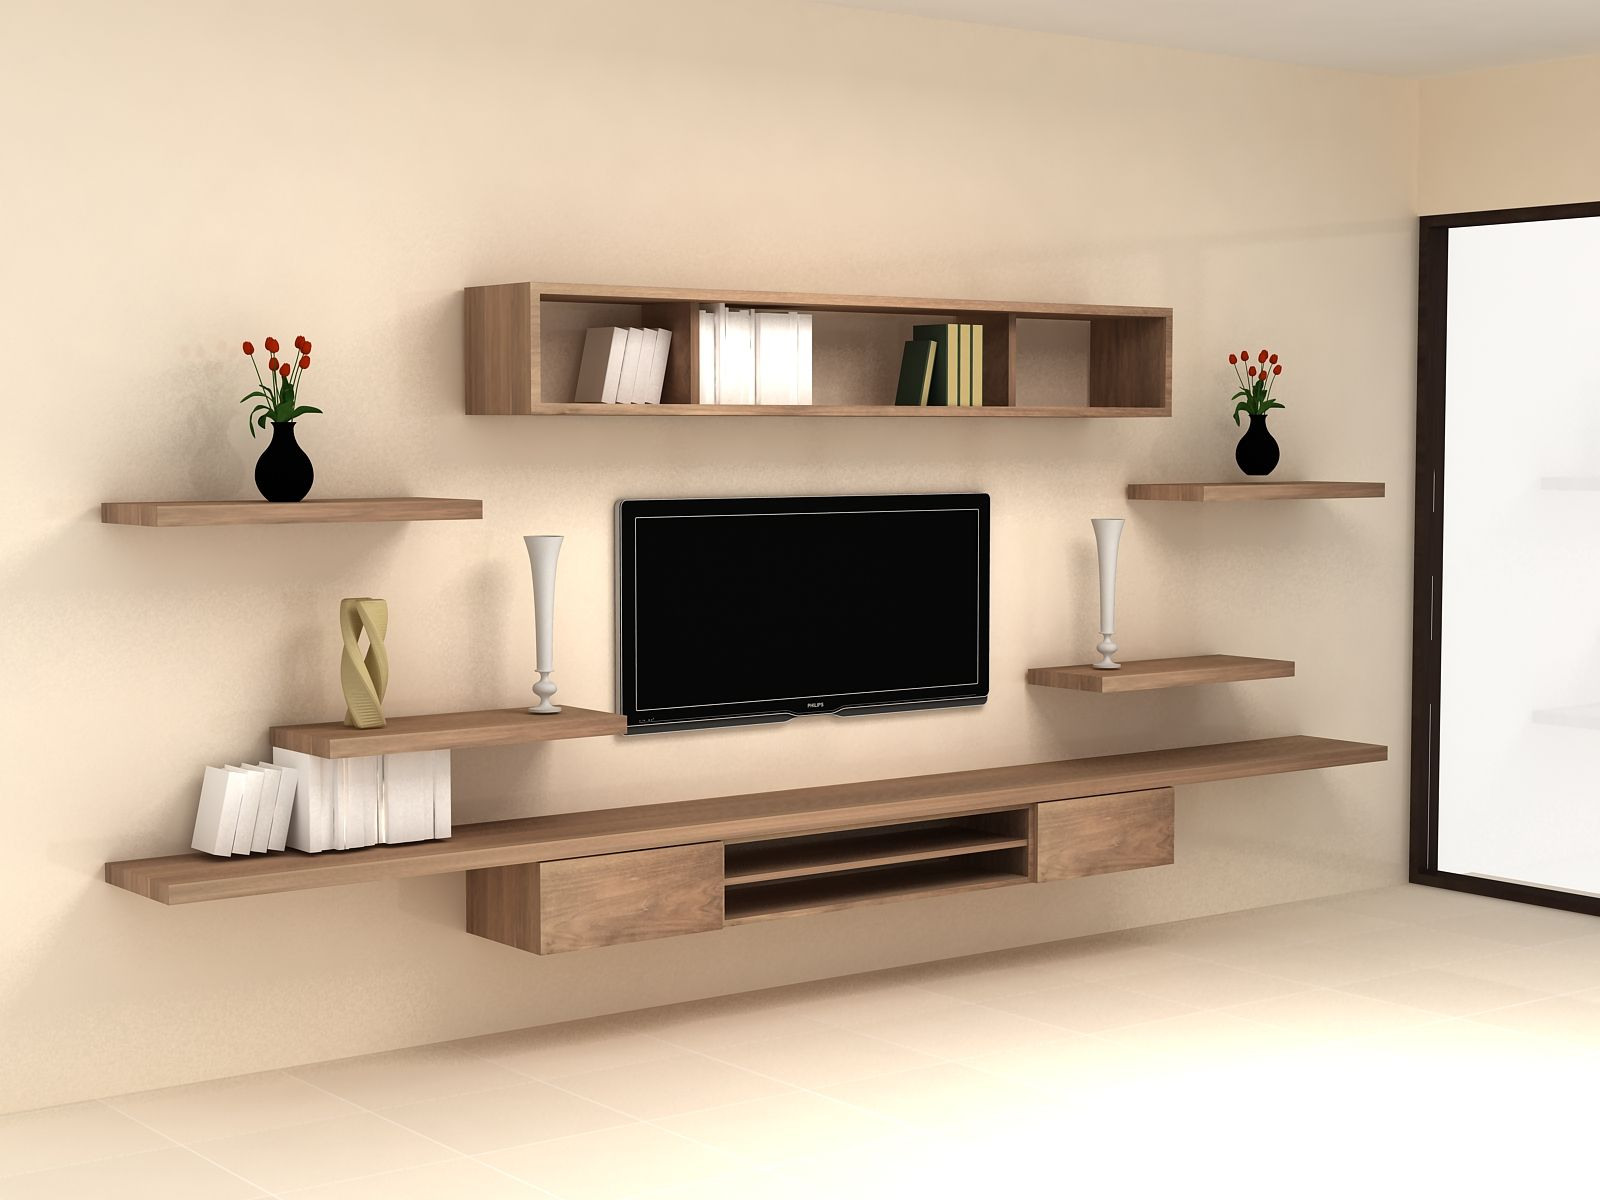 Living Room Tv Cabinet Designs Inspiration Decorating Design